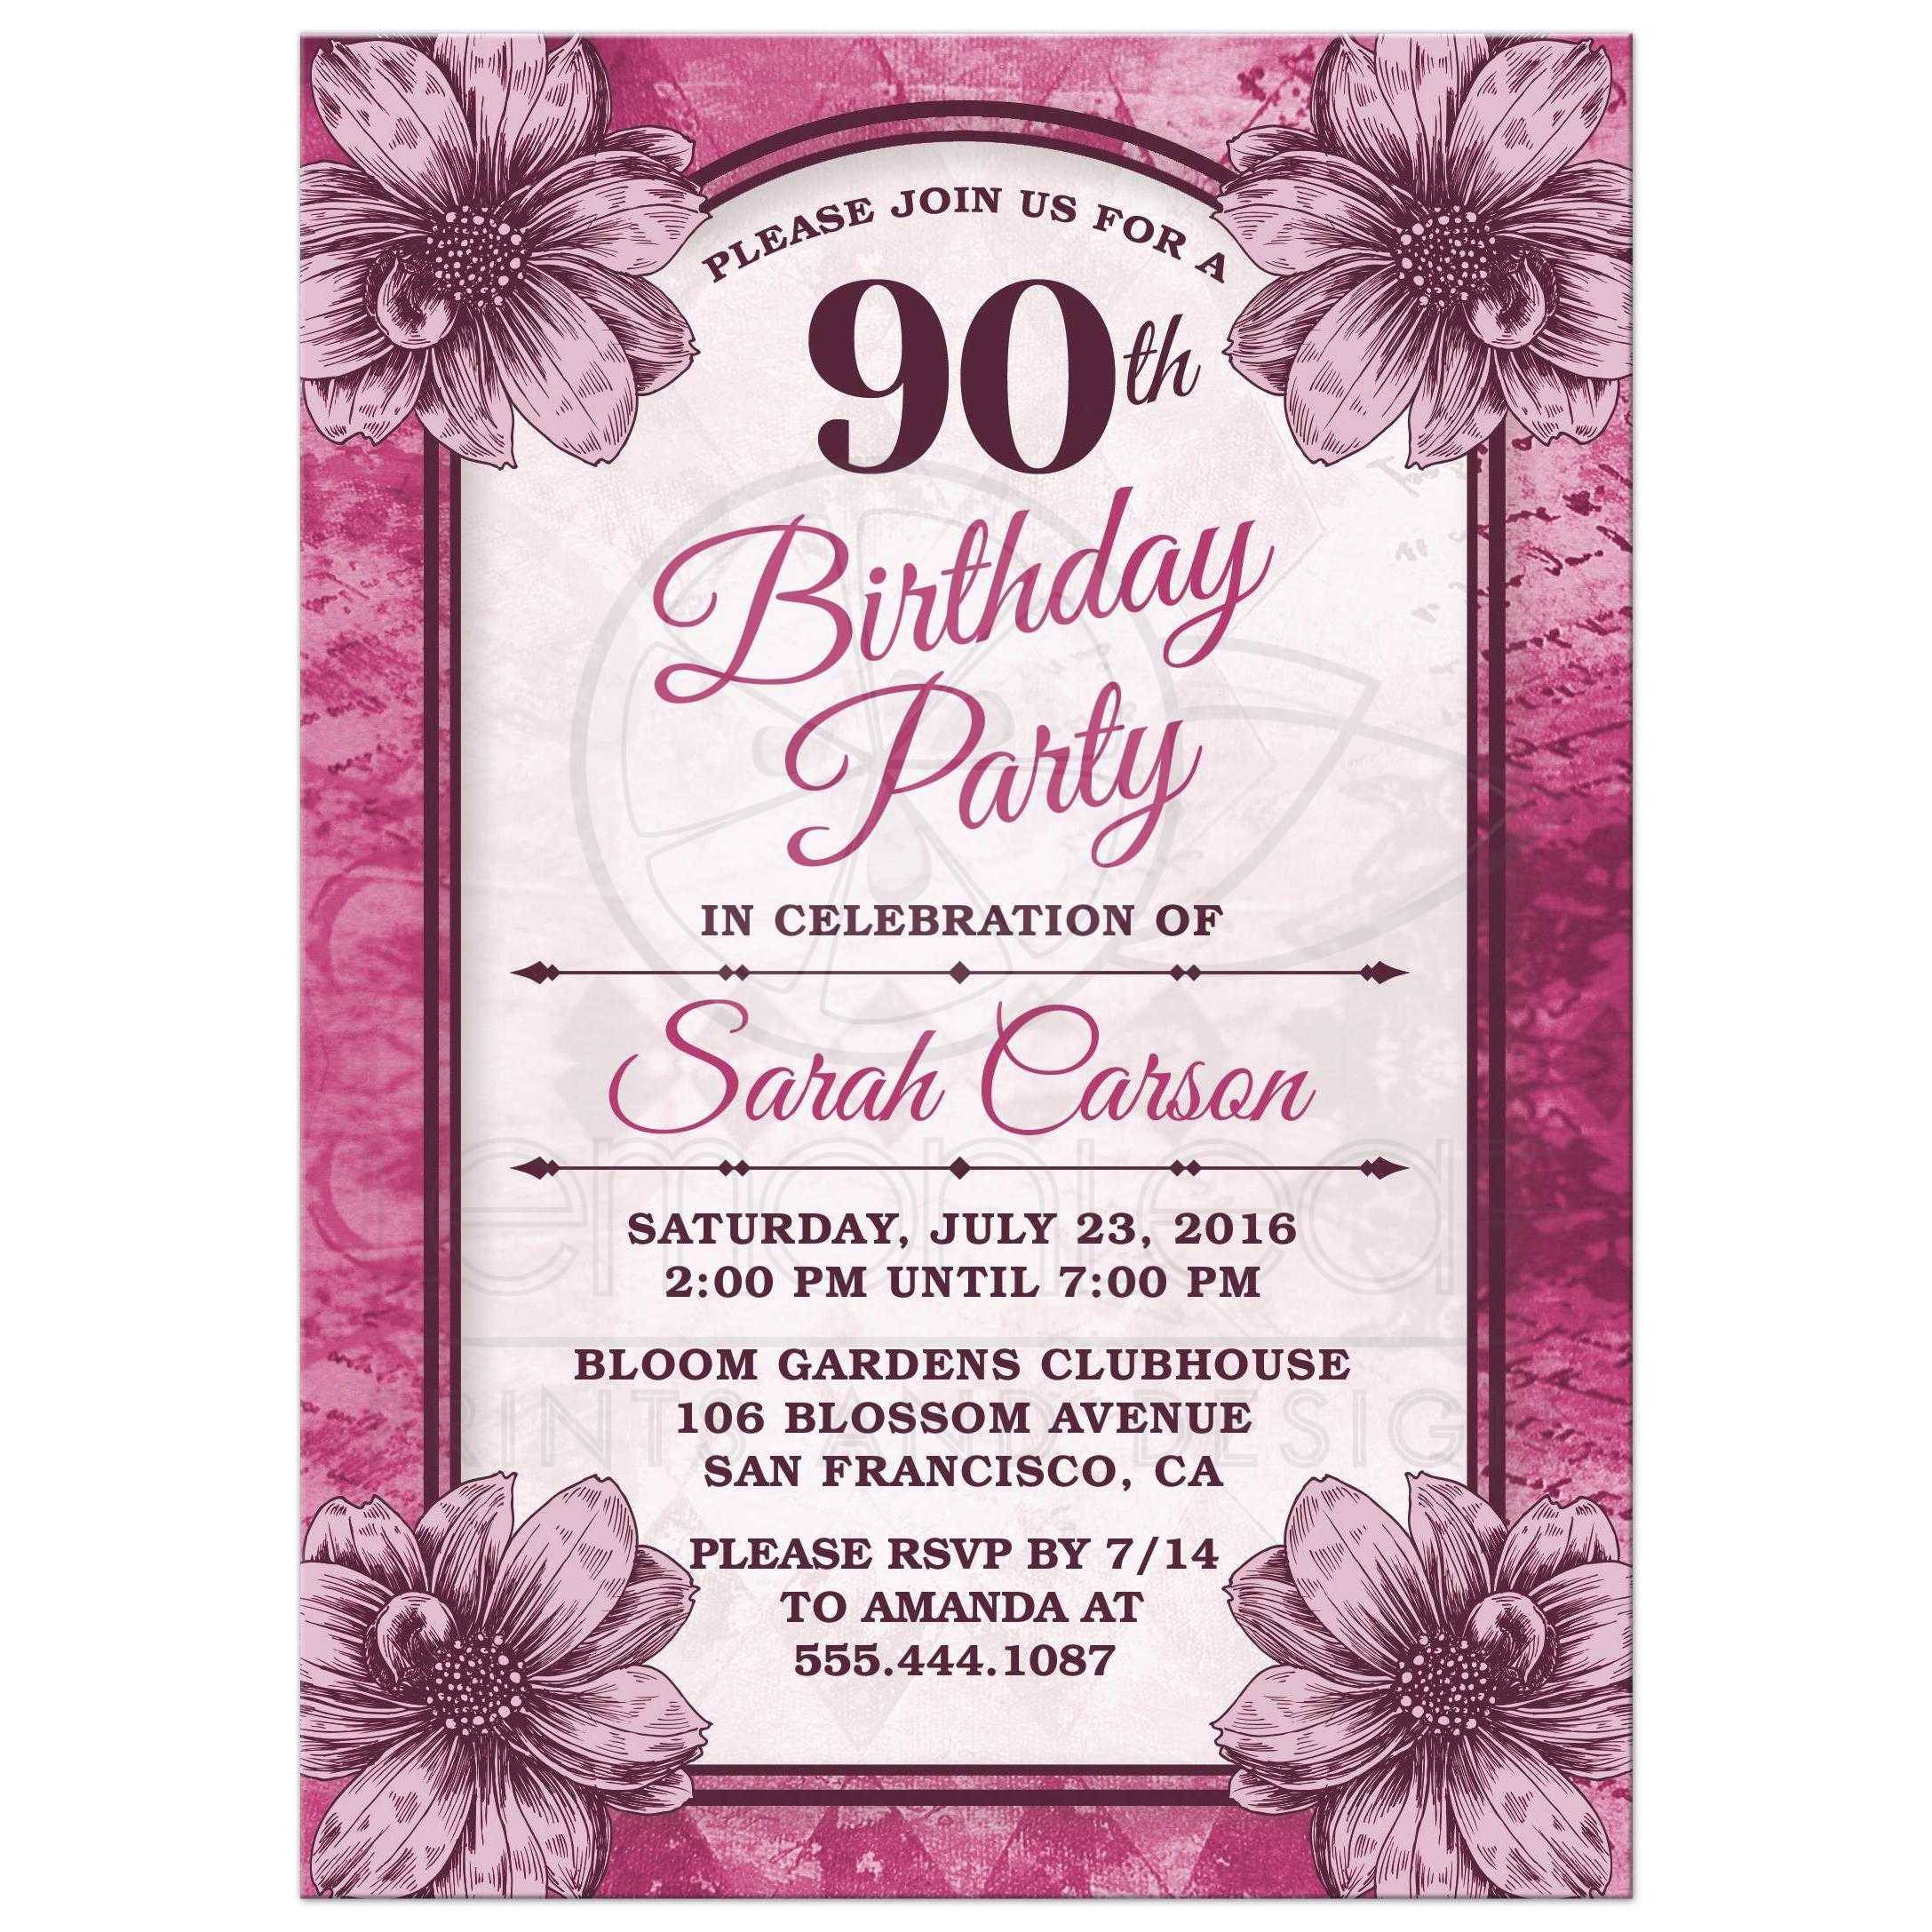 Invitation Template Word Pleasing Birthday Invitation Templates  Birthday Invitation Templates Word .